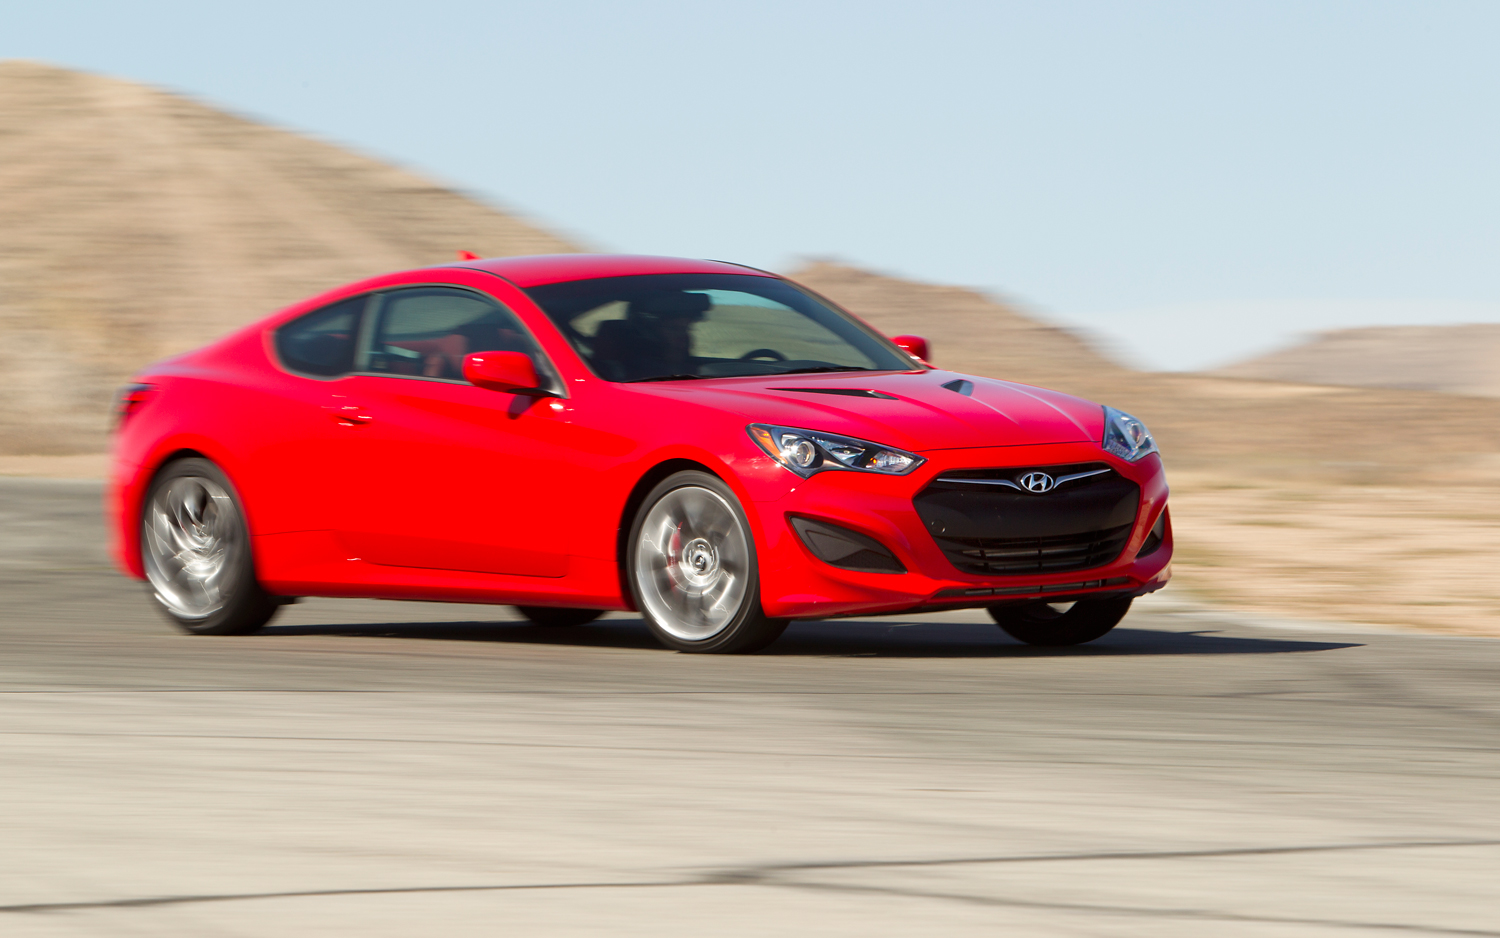 2013 Hyundai Genesis Coupe 2.0T R-Spec First Test